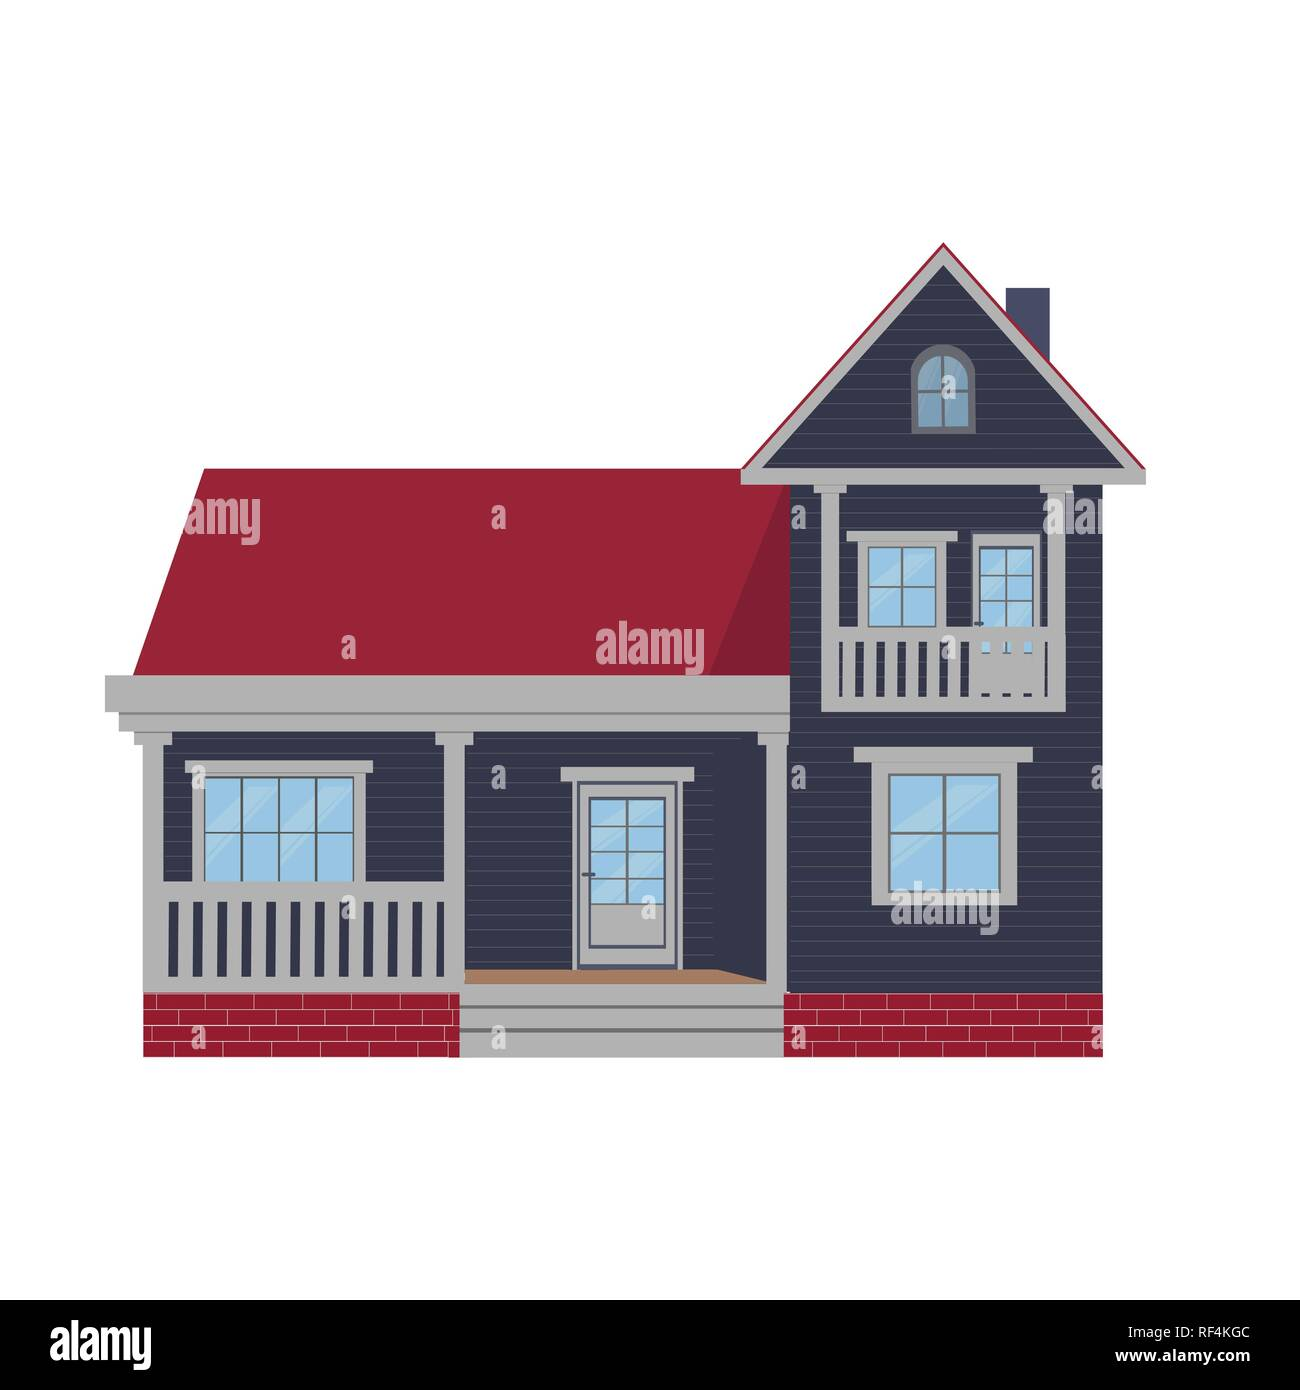 Colorful country house, family cottage, mansion recreation, real estate in provincial style. Facade of residential building. Two-storey family house with rooms, windows, plants. Vector illustration. - Stock Image